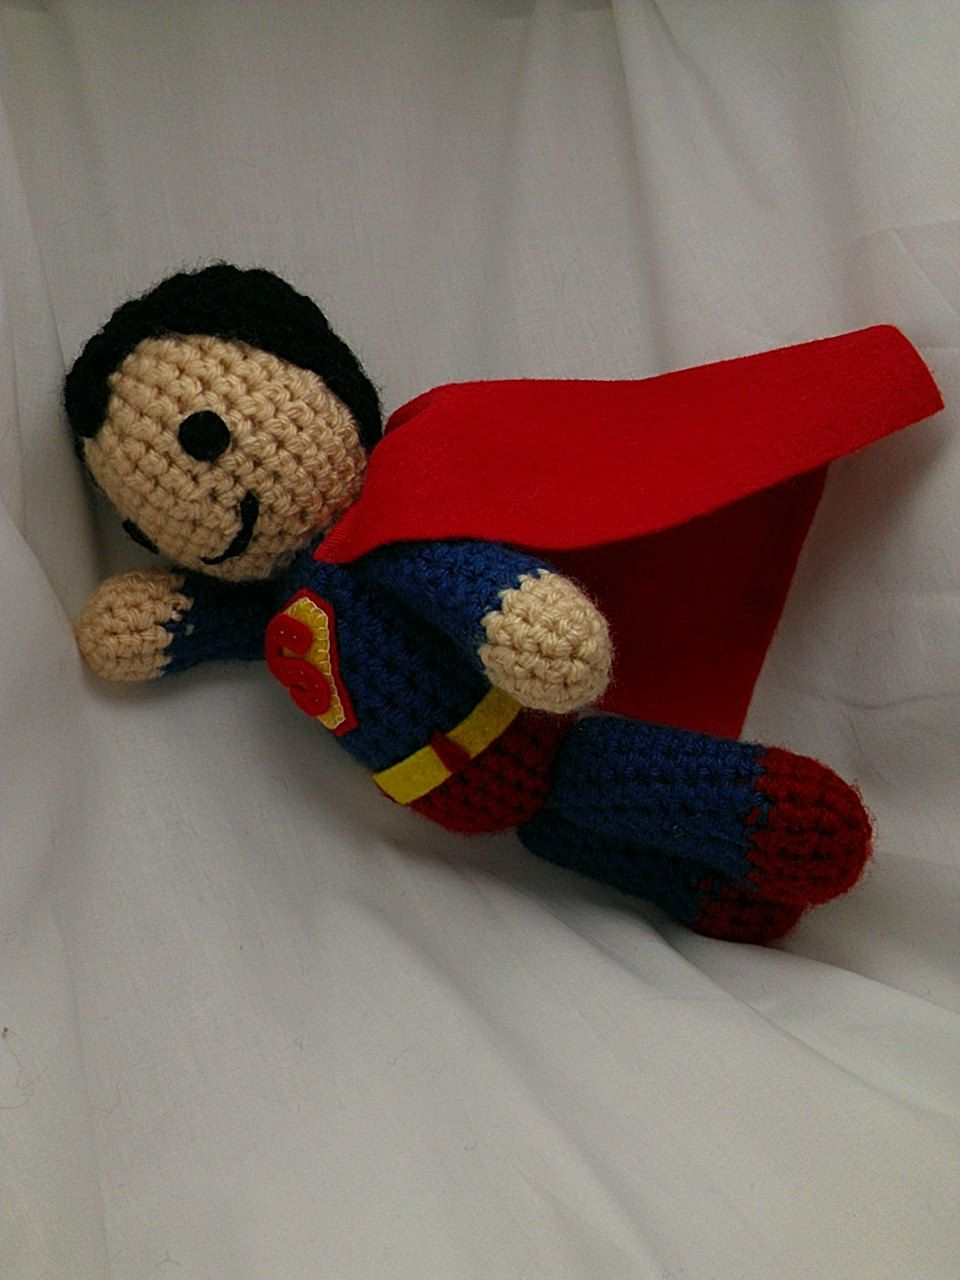 Superman Crocheted Doll Pattern Is No Longer On The Site